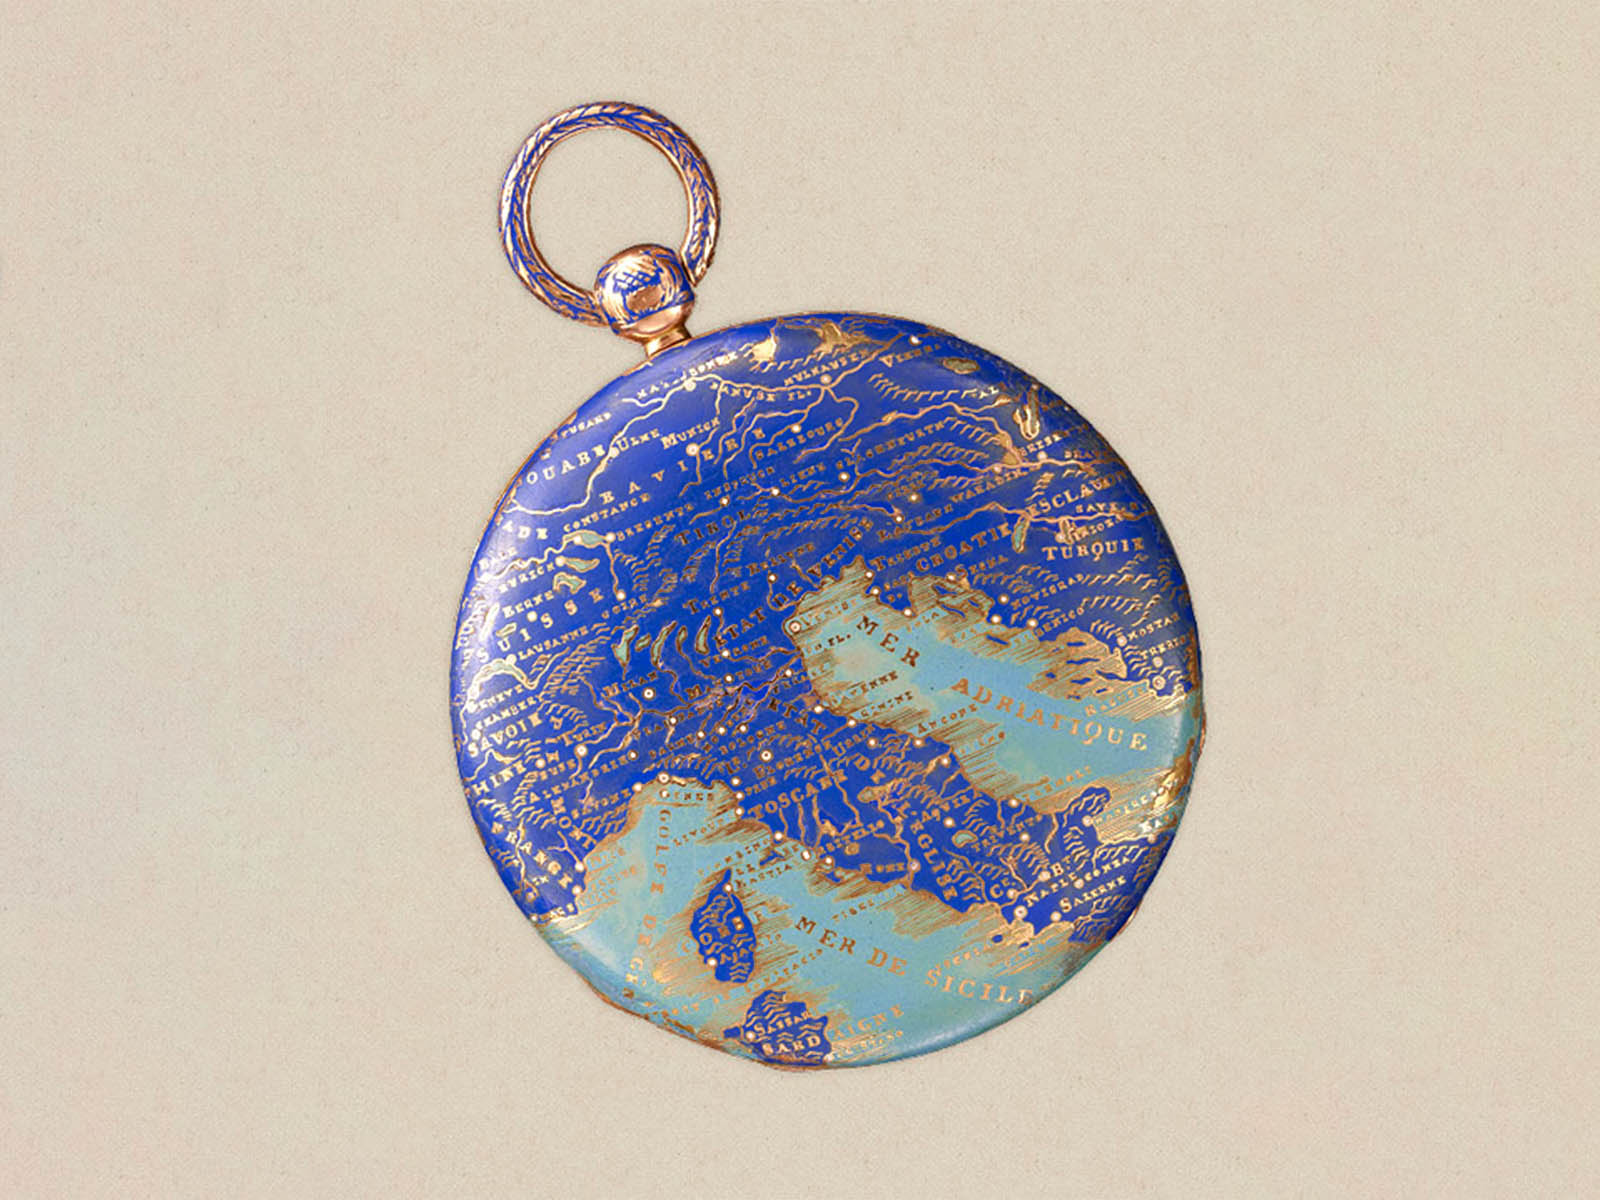 vacheron-constantin-1824-pocket-watch-with-a-map-of-italy-in-blue-enamels-1.jpg